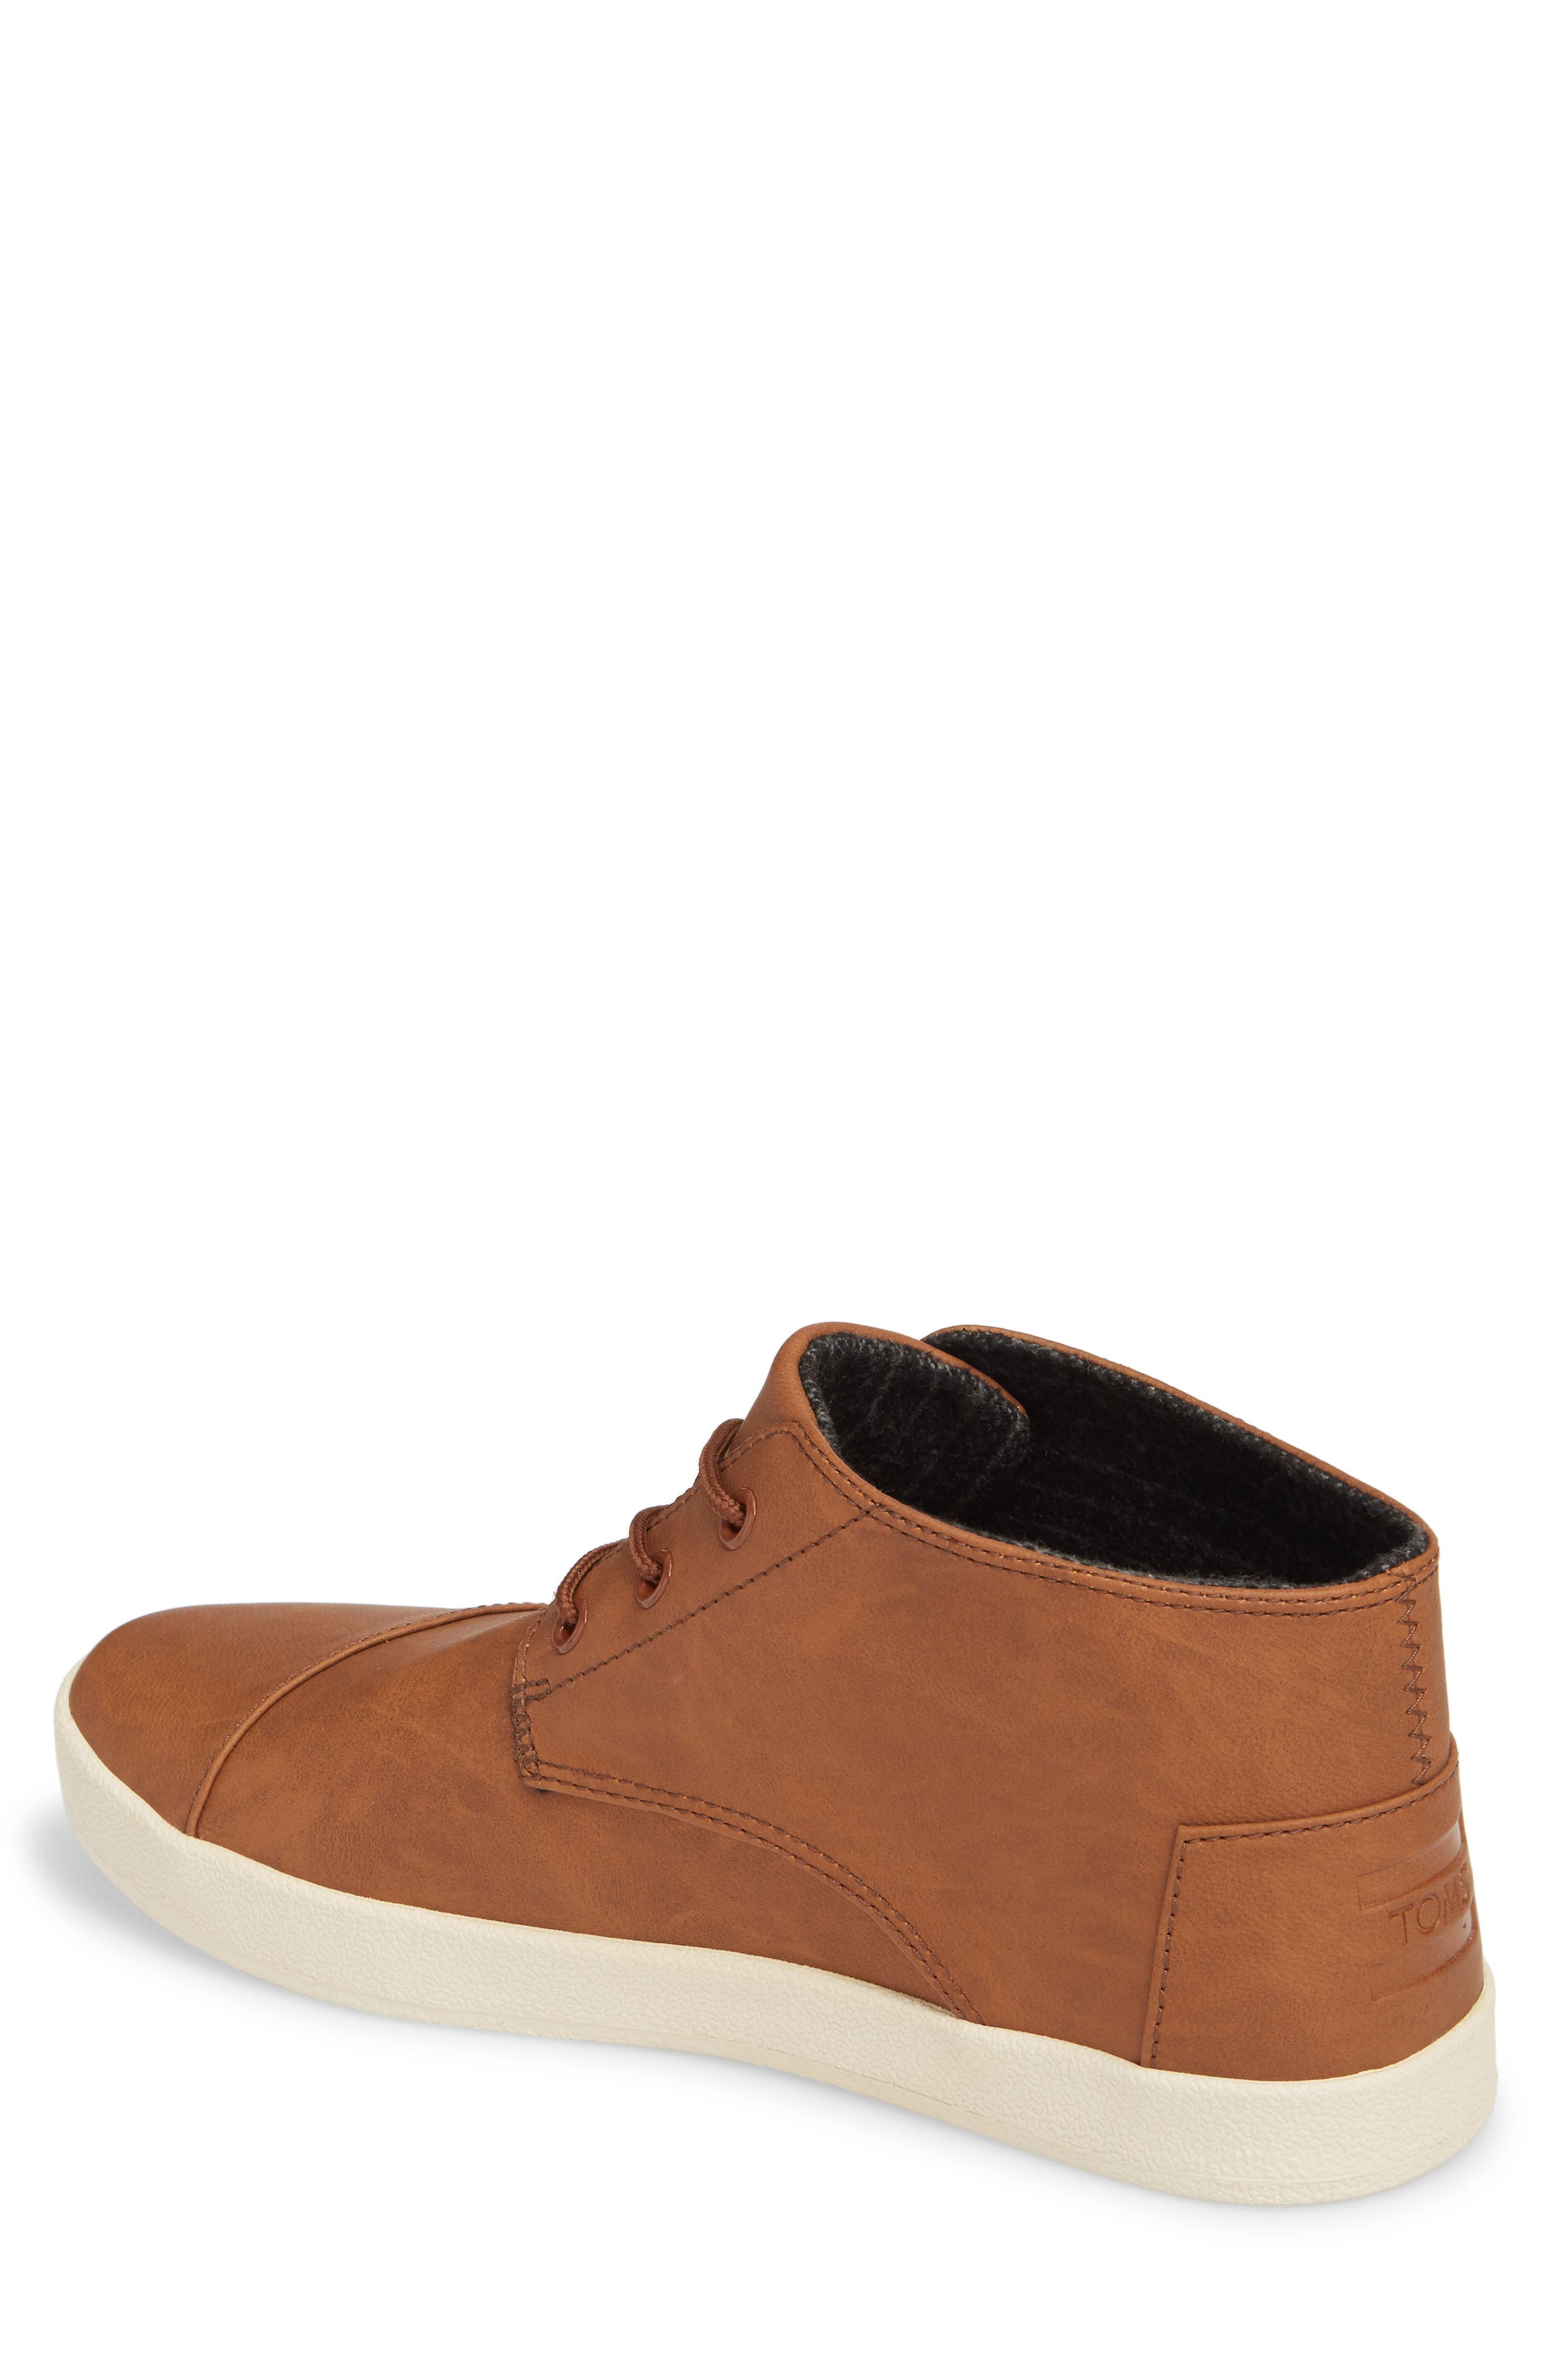 Paseo Mid Sneaker,                             Alternate thumbnail 2, color,                             Dark Earth Brown